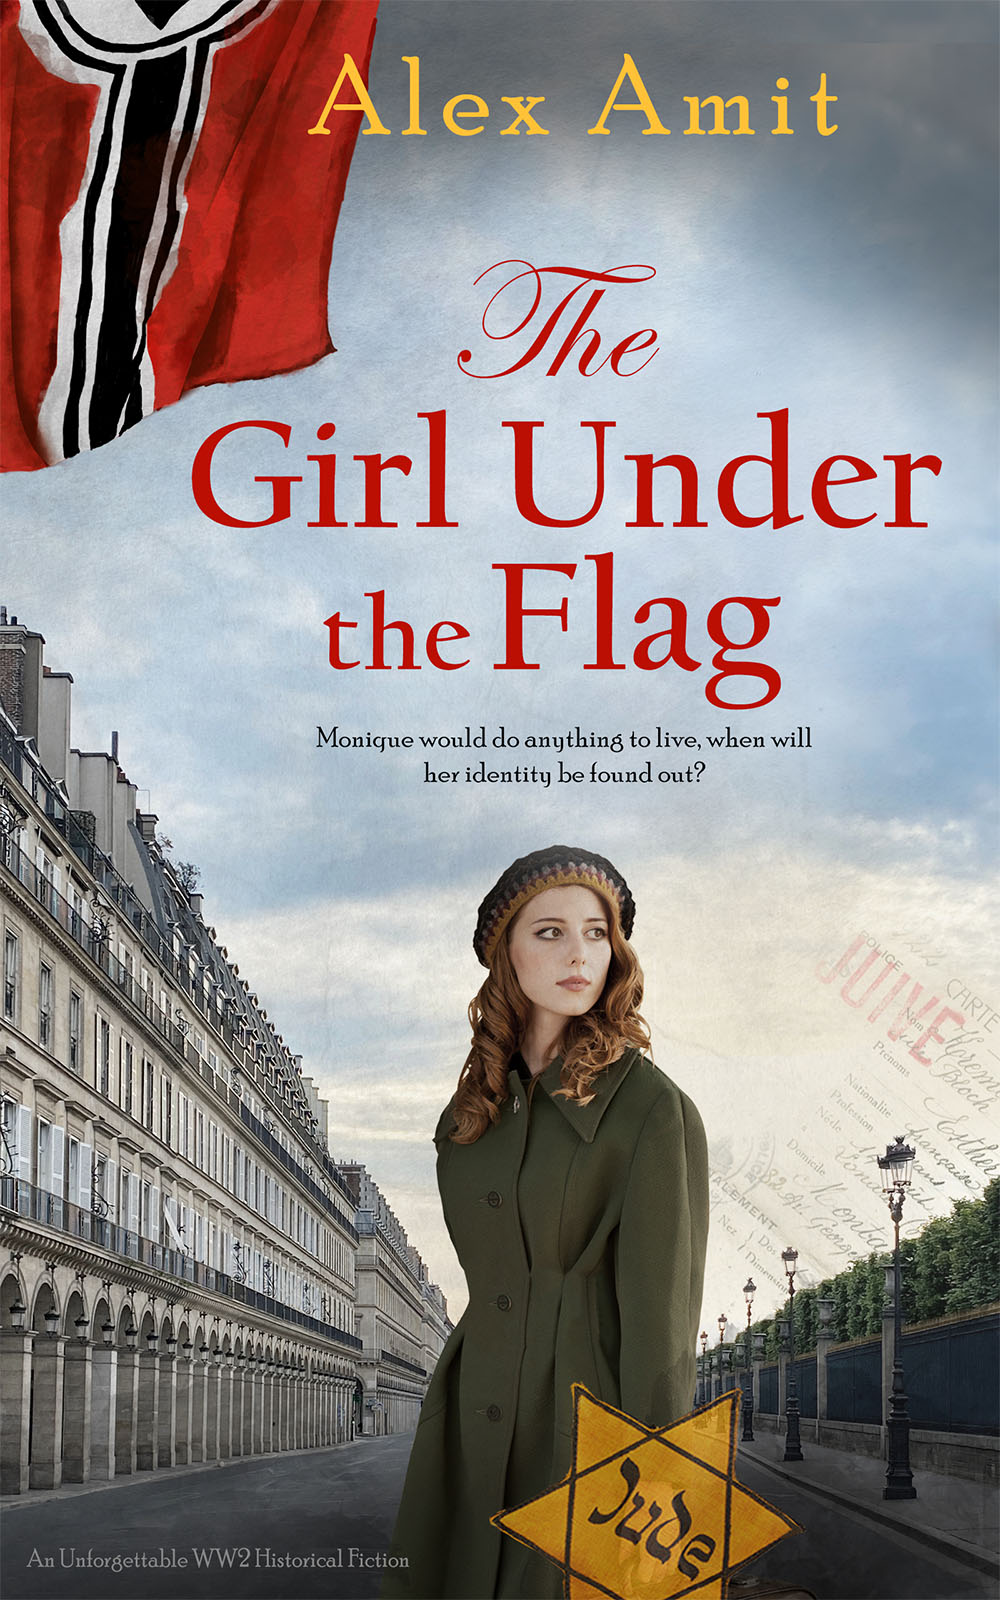 The Girl Under the Flag